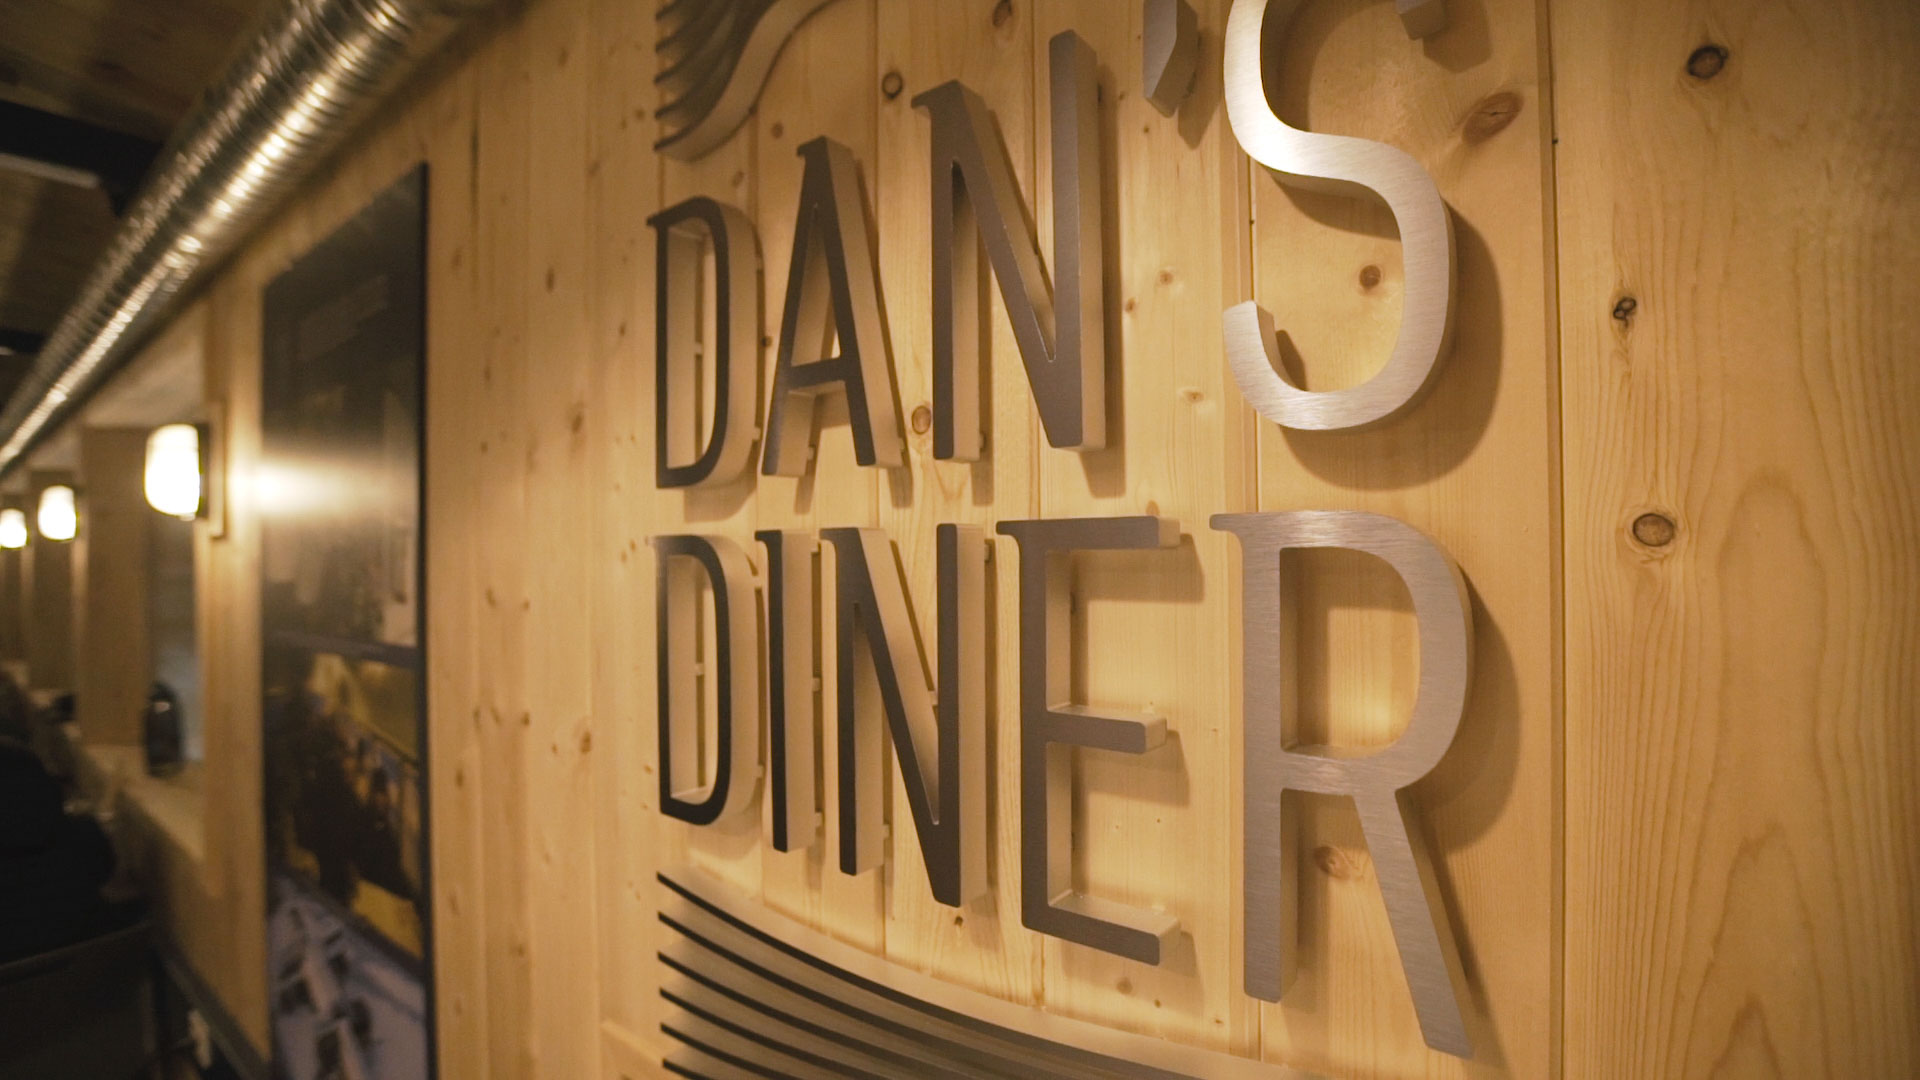 Watch the Dan's Diner video